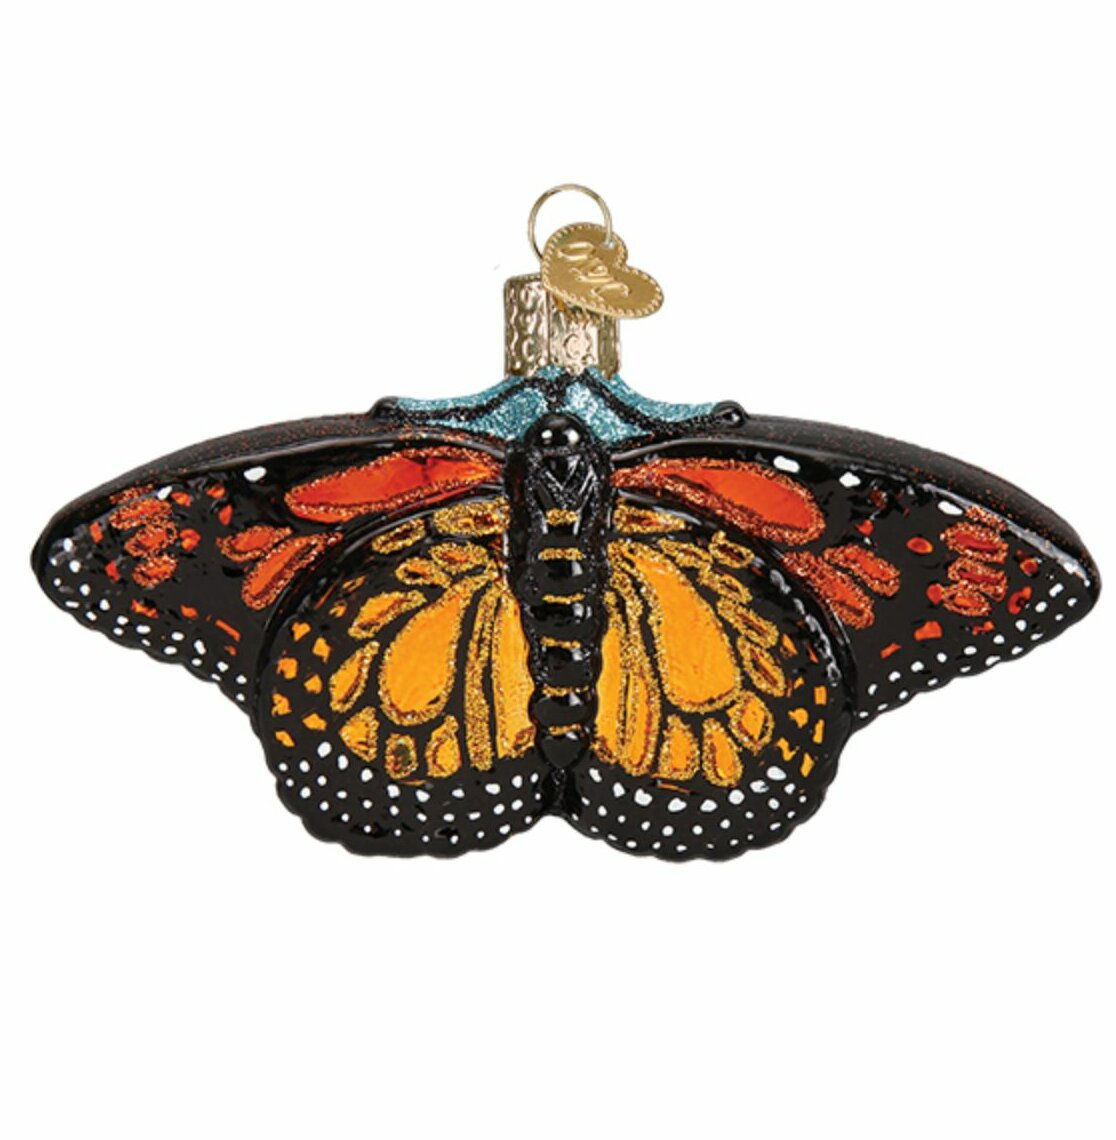 Old World Christmas Monarch Butterfly Hanging Figurine Ornament Wayfair